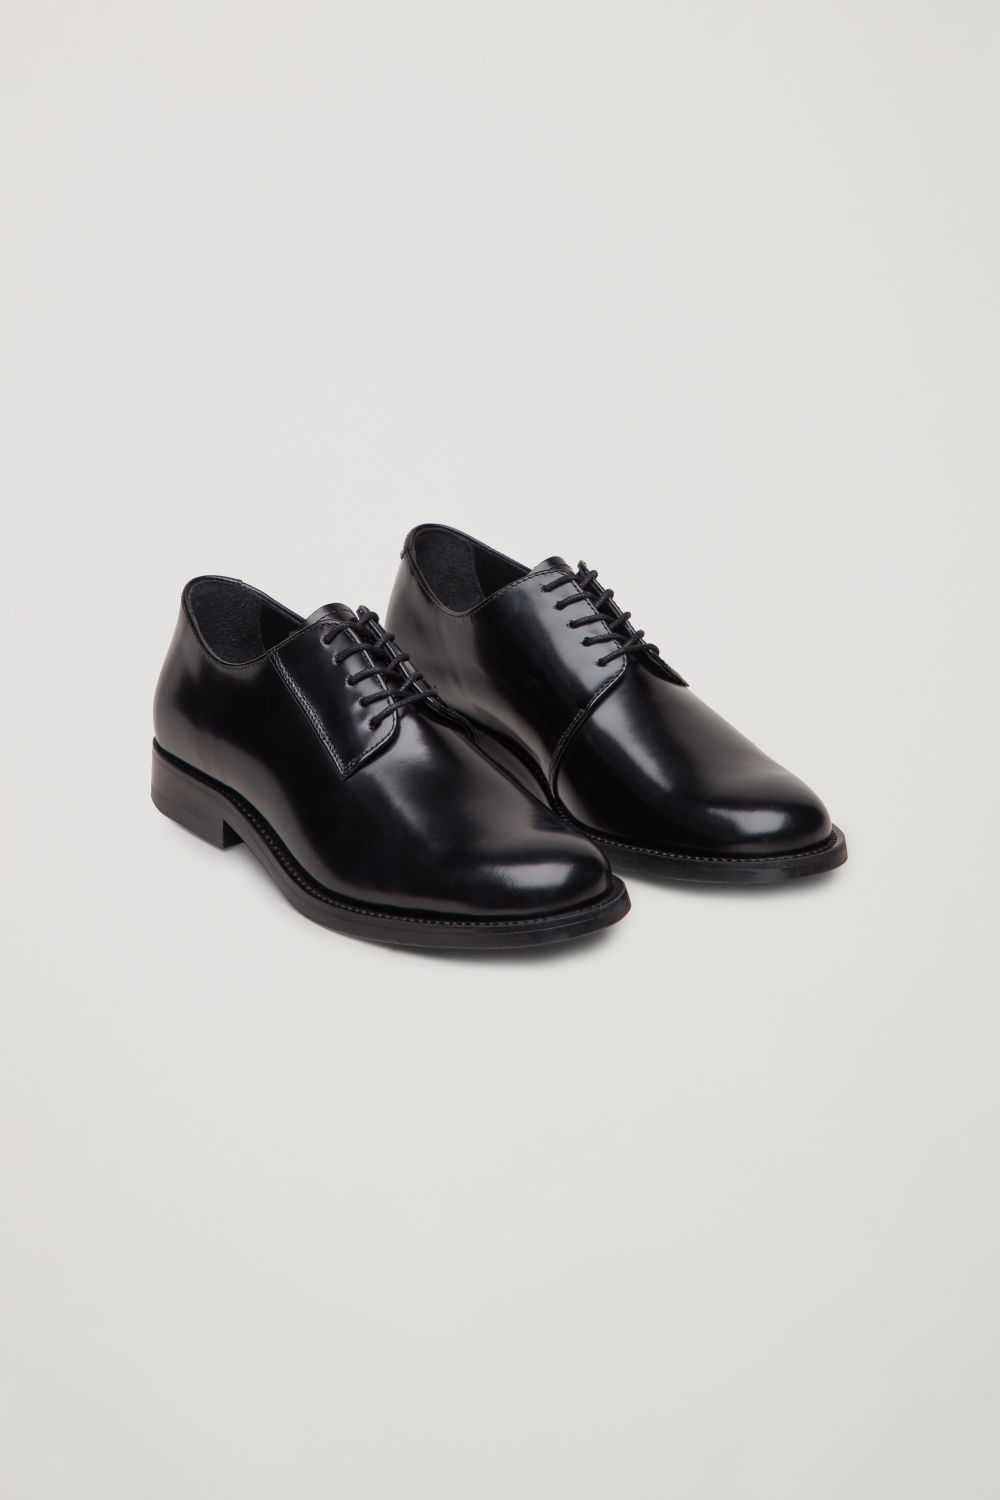 ROUND-TOE LEATHER OXFORD SHOES